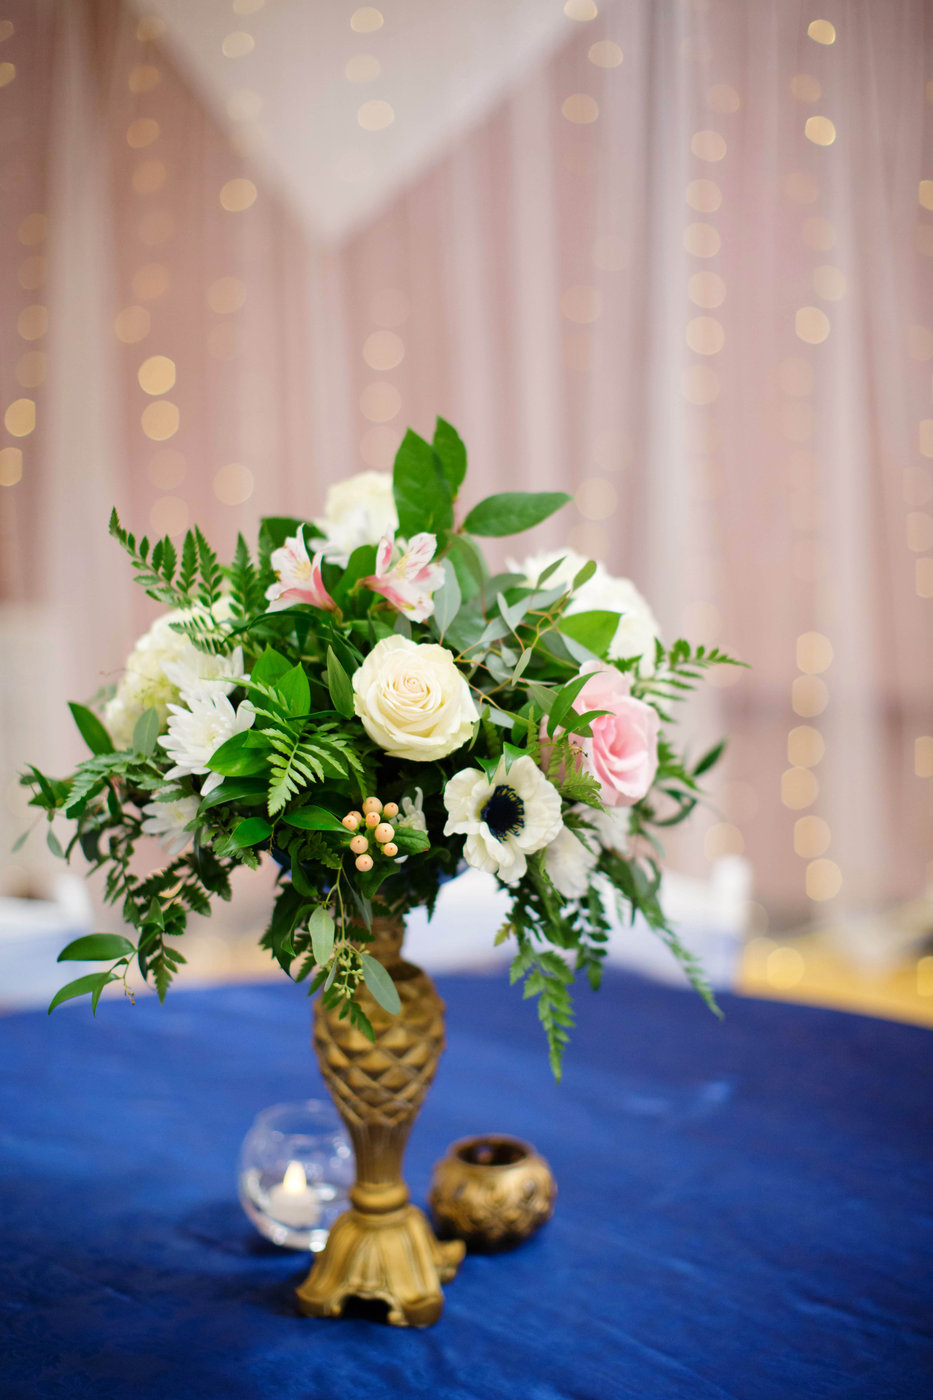 Purchase Flowers Online -